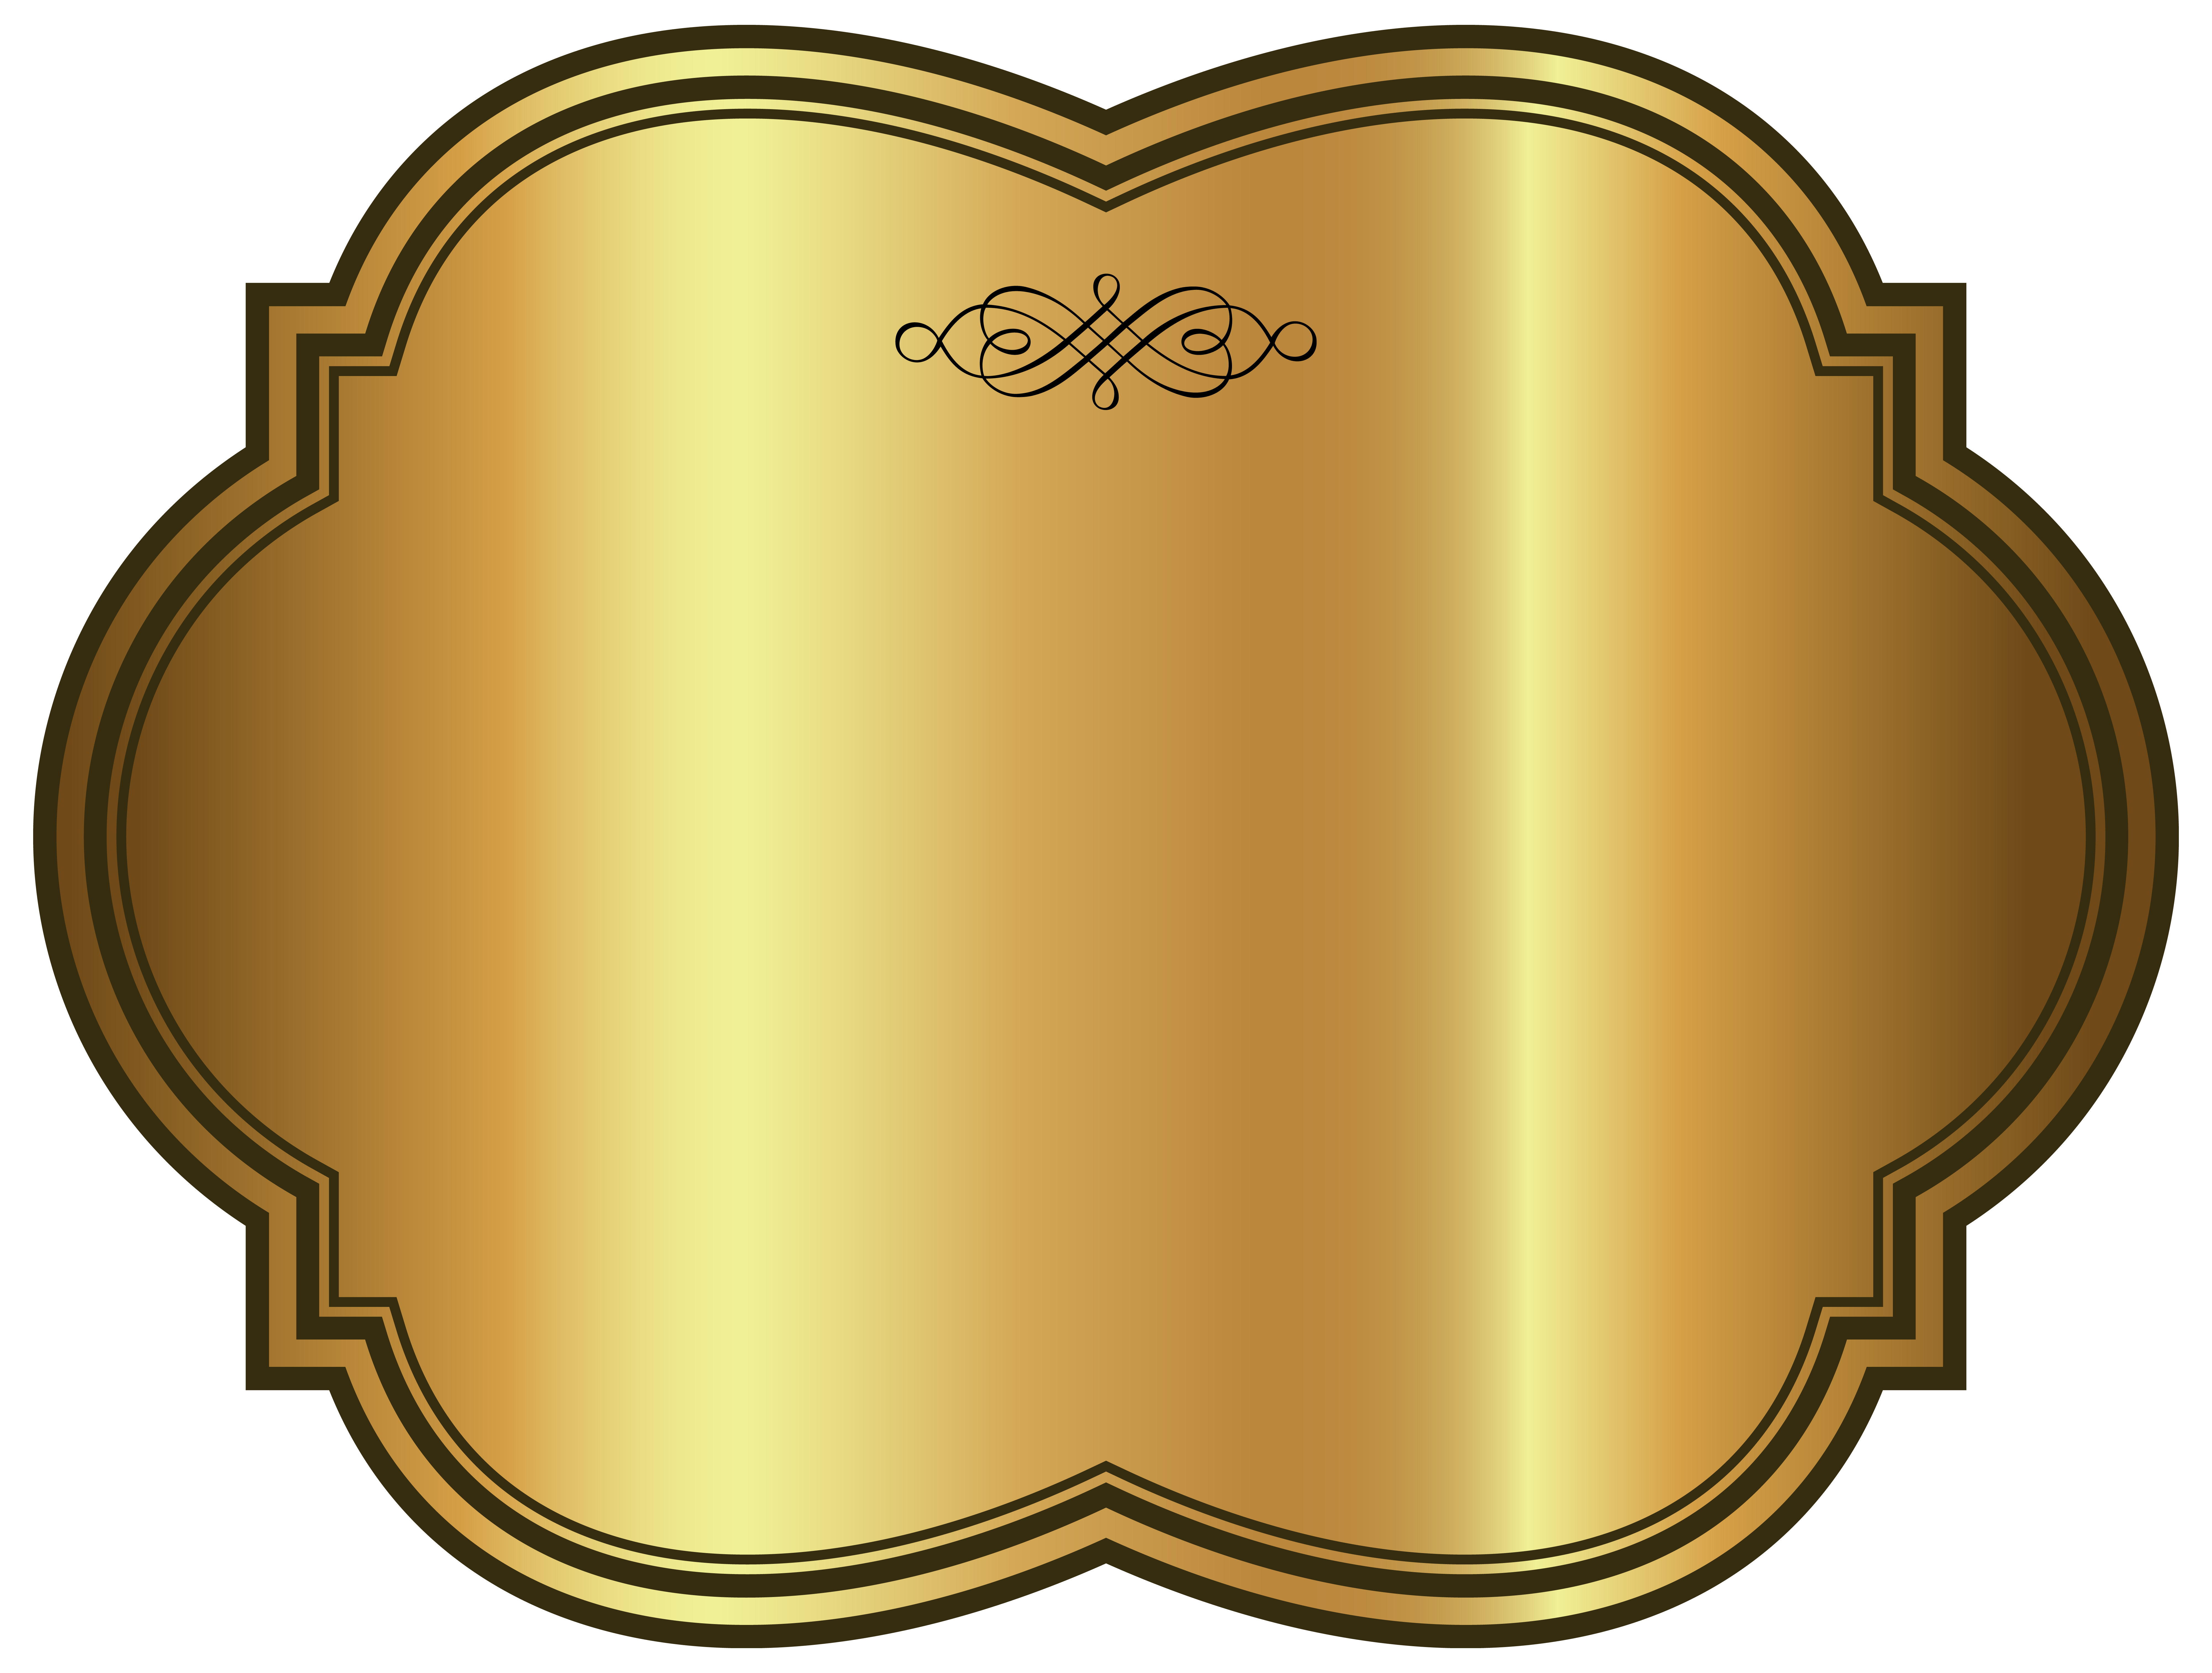 svg free Carpet clipart oval rug. Golden luxury label template.